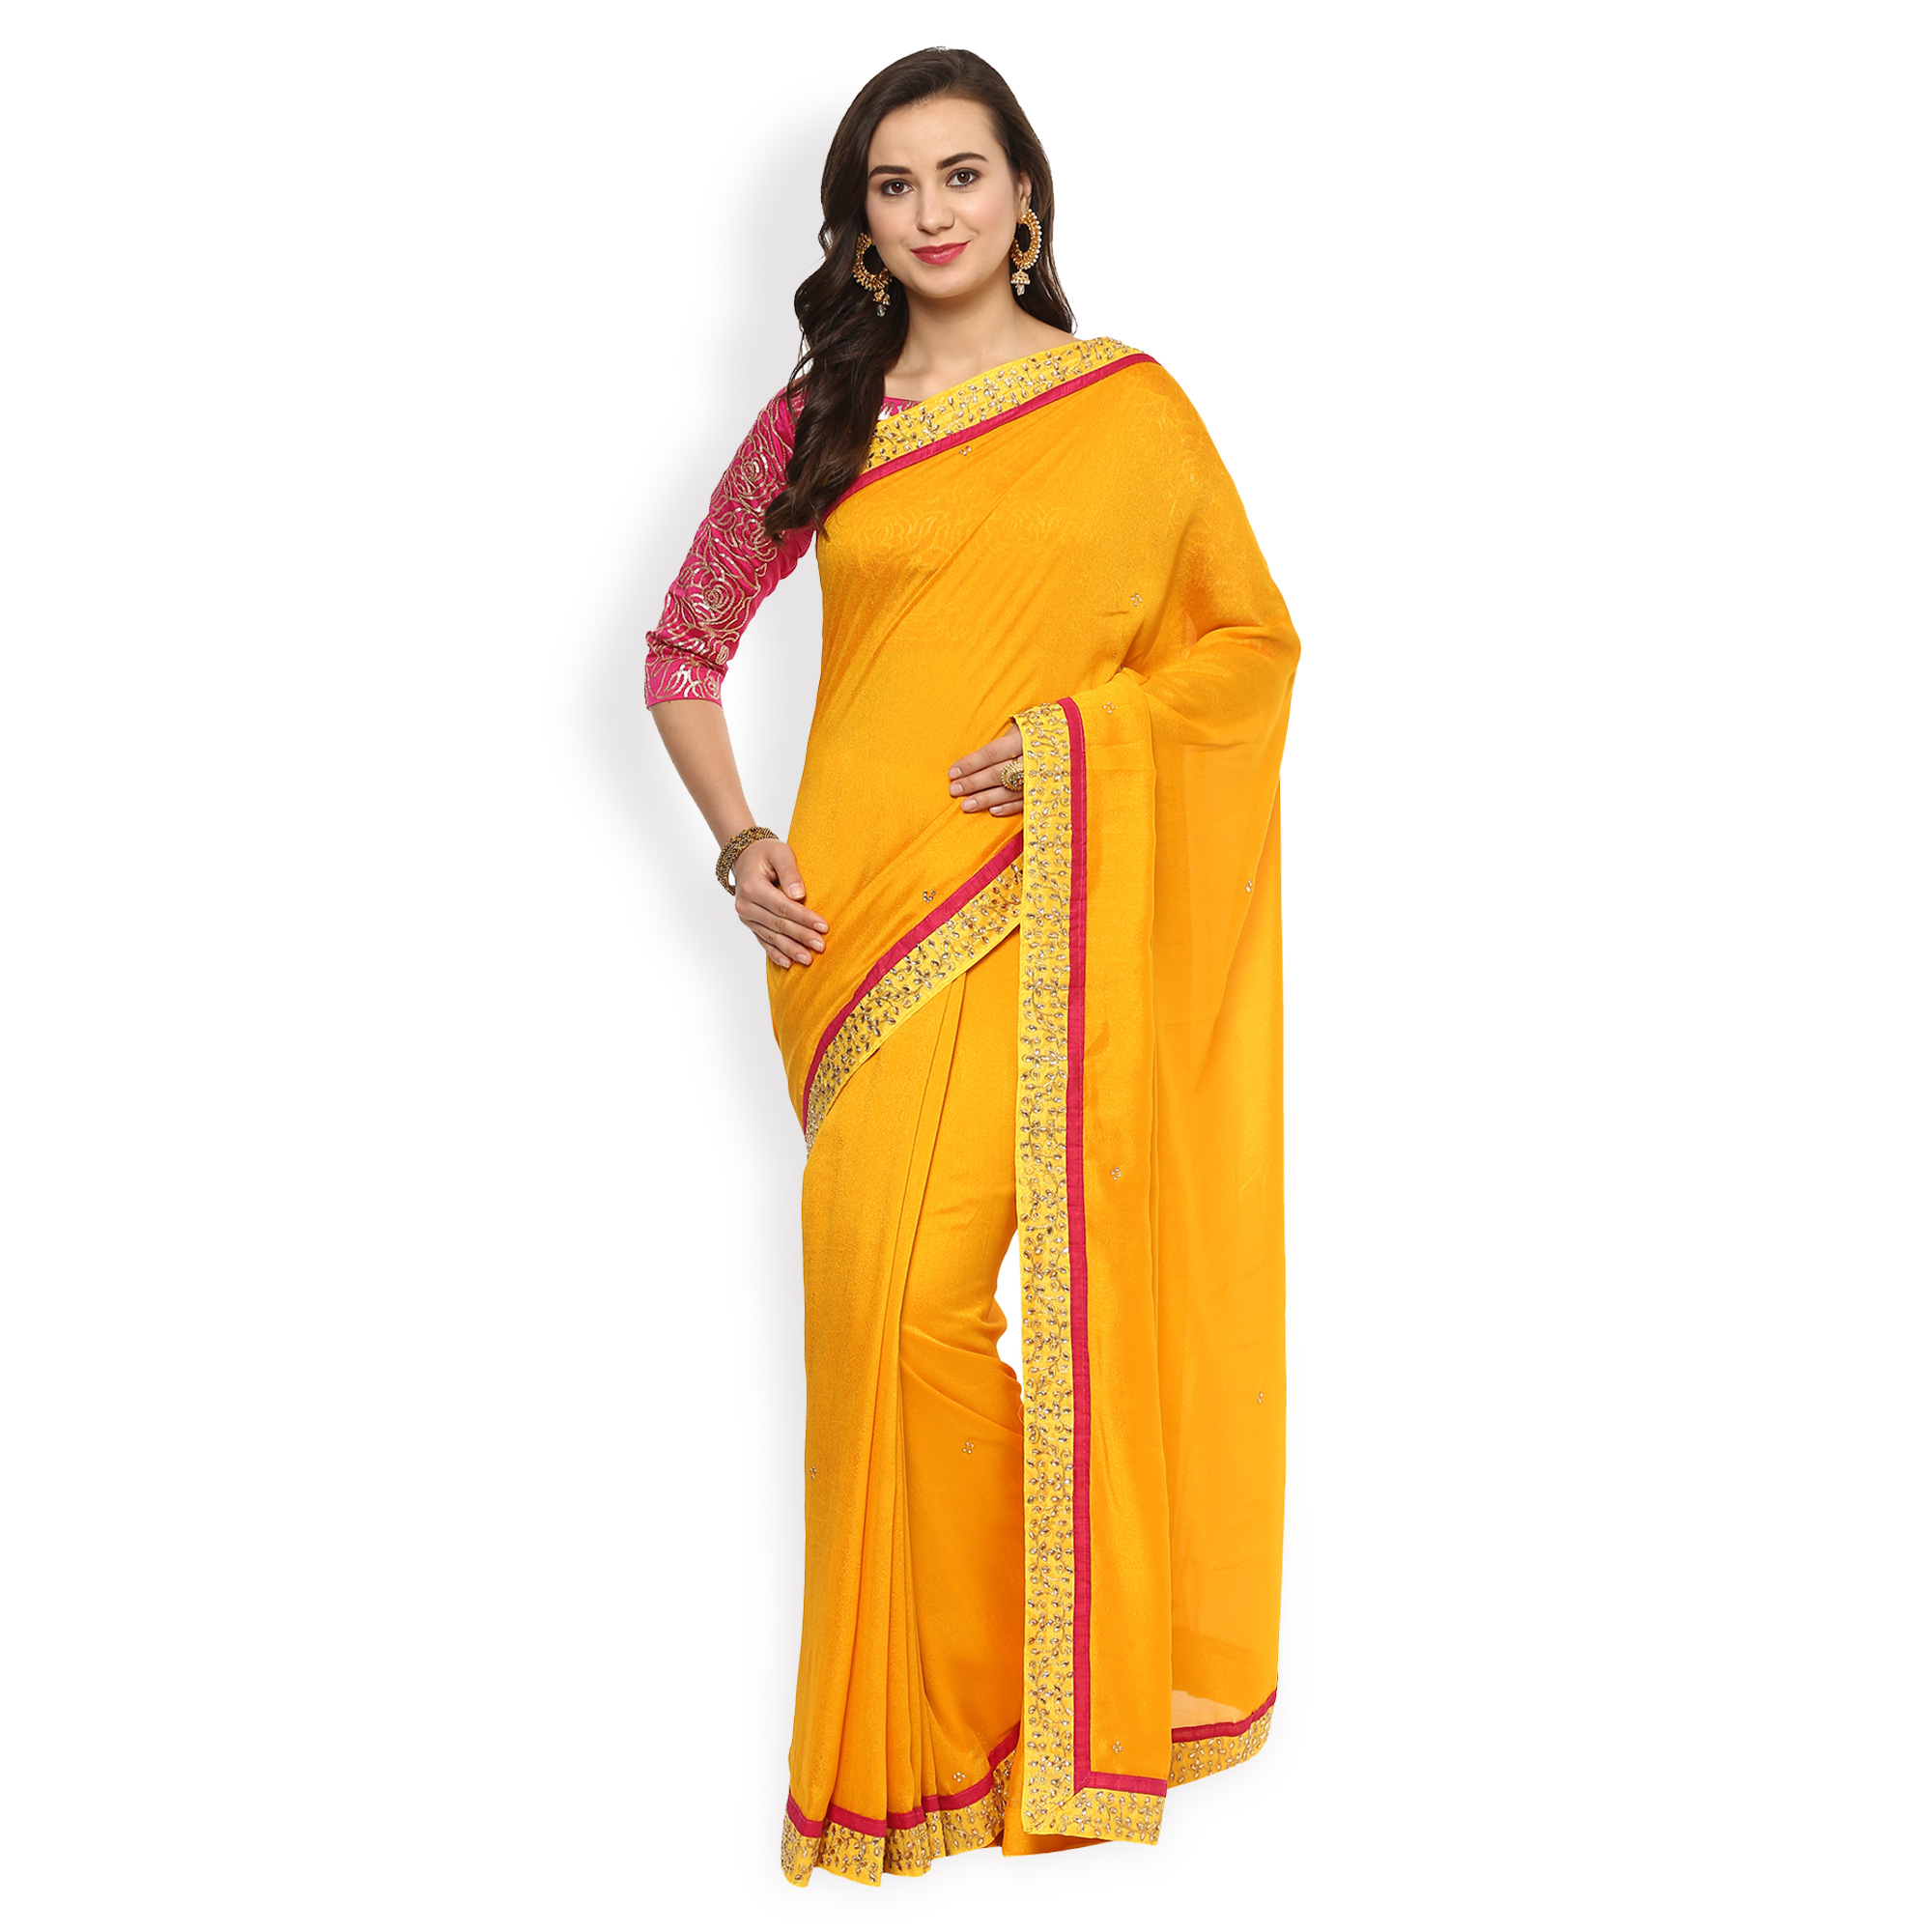 Marvellous Yellow Partywear Embroidered Paper Silk Saree